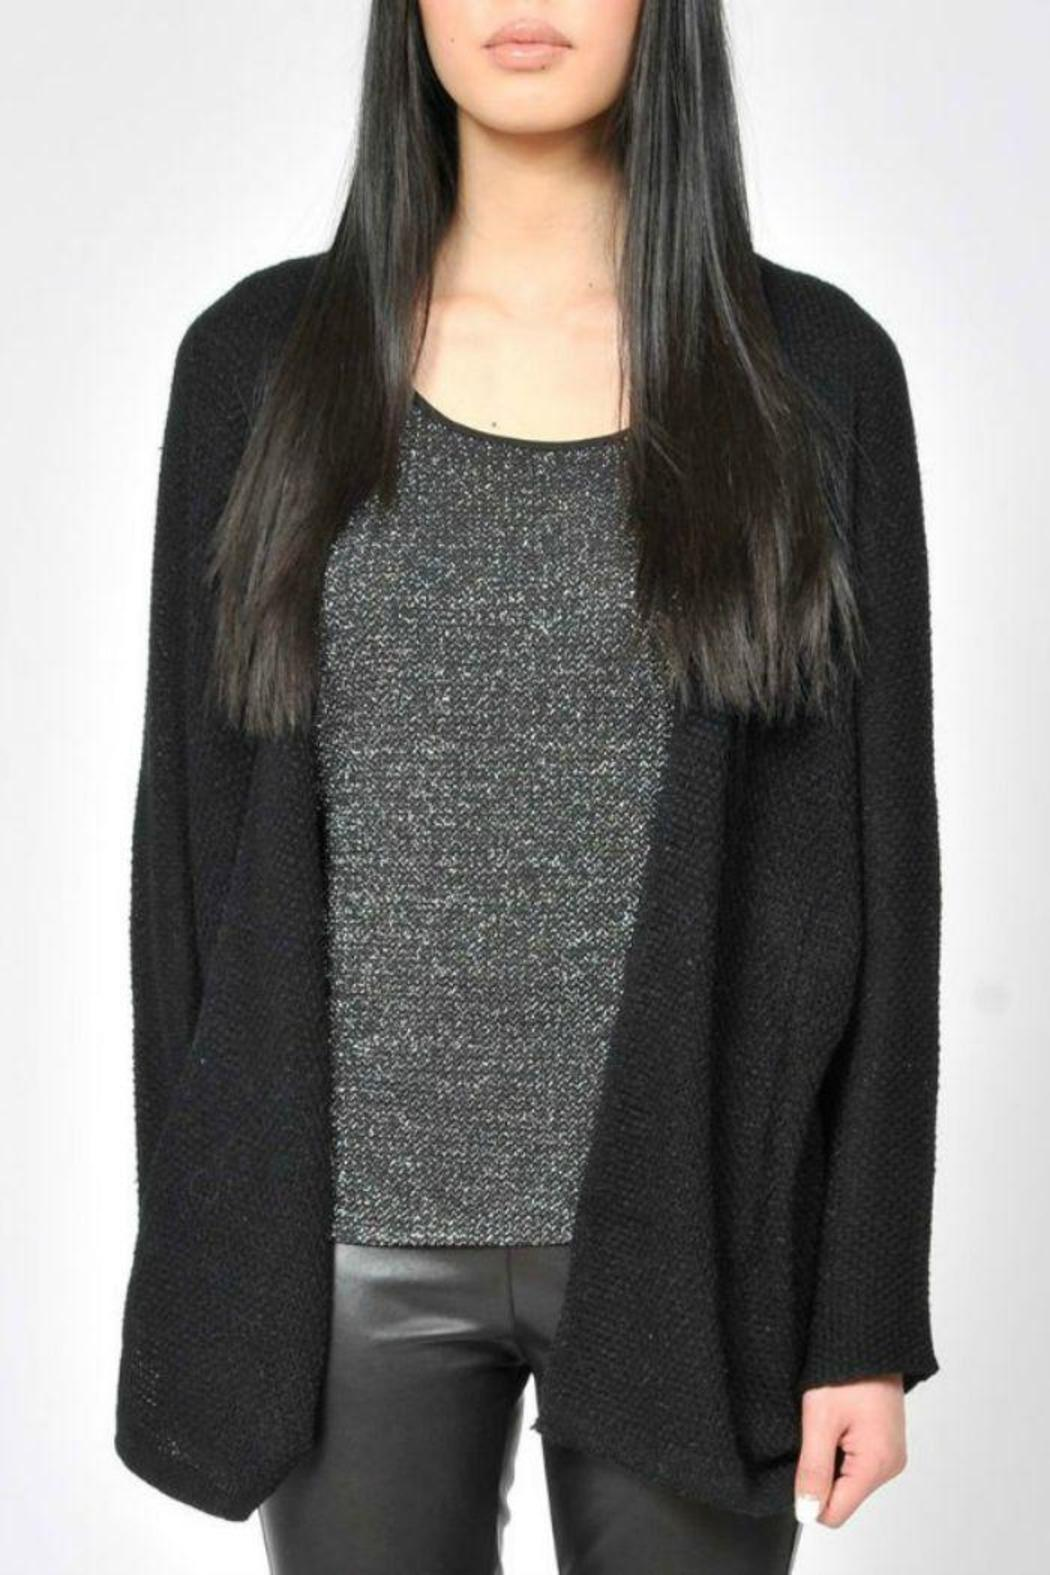 Pink Martini Simple Cardigan from Des Moines by Wanderlust fashion ...